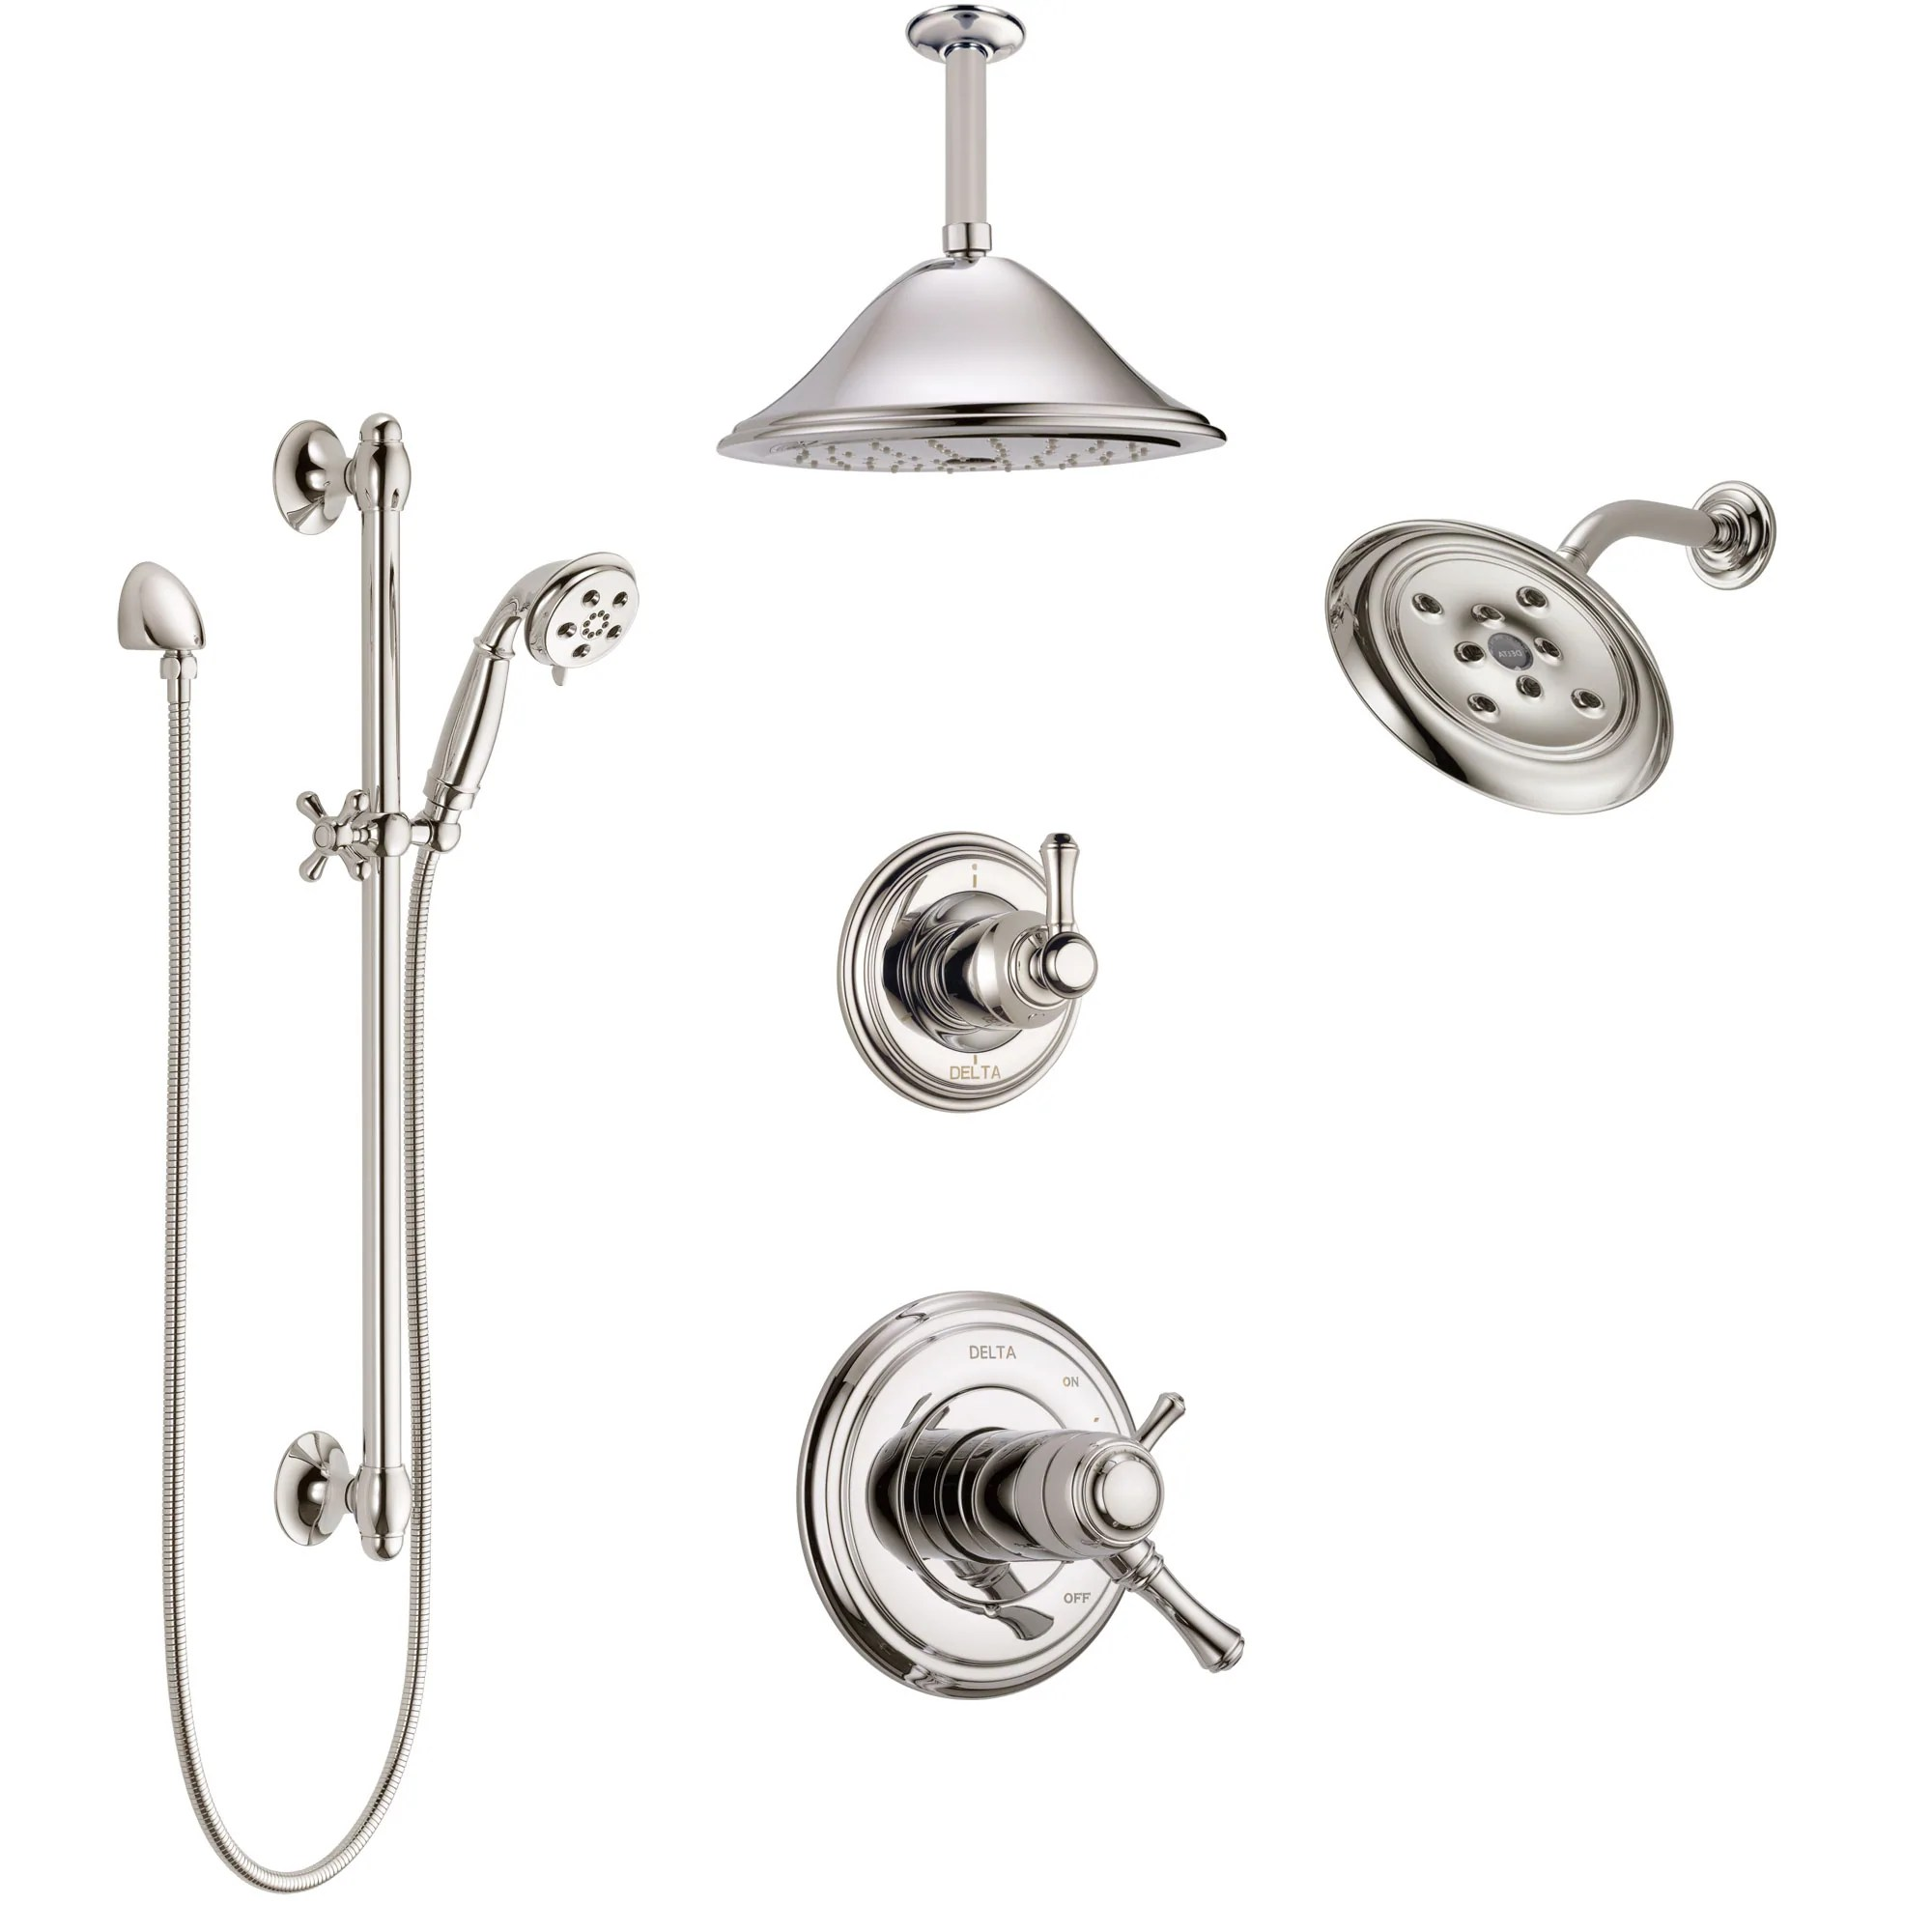 Delta Cassidy Polished Nickel Shower System With Dual Thermostatic Control Diverter Showerhead Ceiling Showerhead And Hand Shower Ss17t971pn6